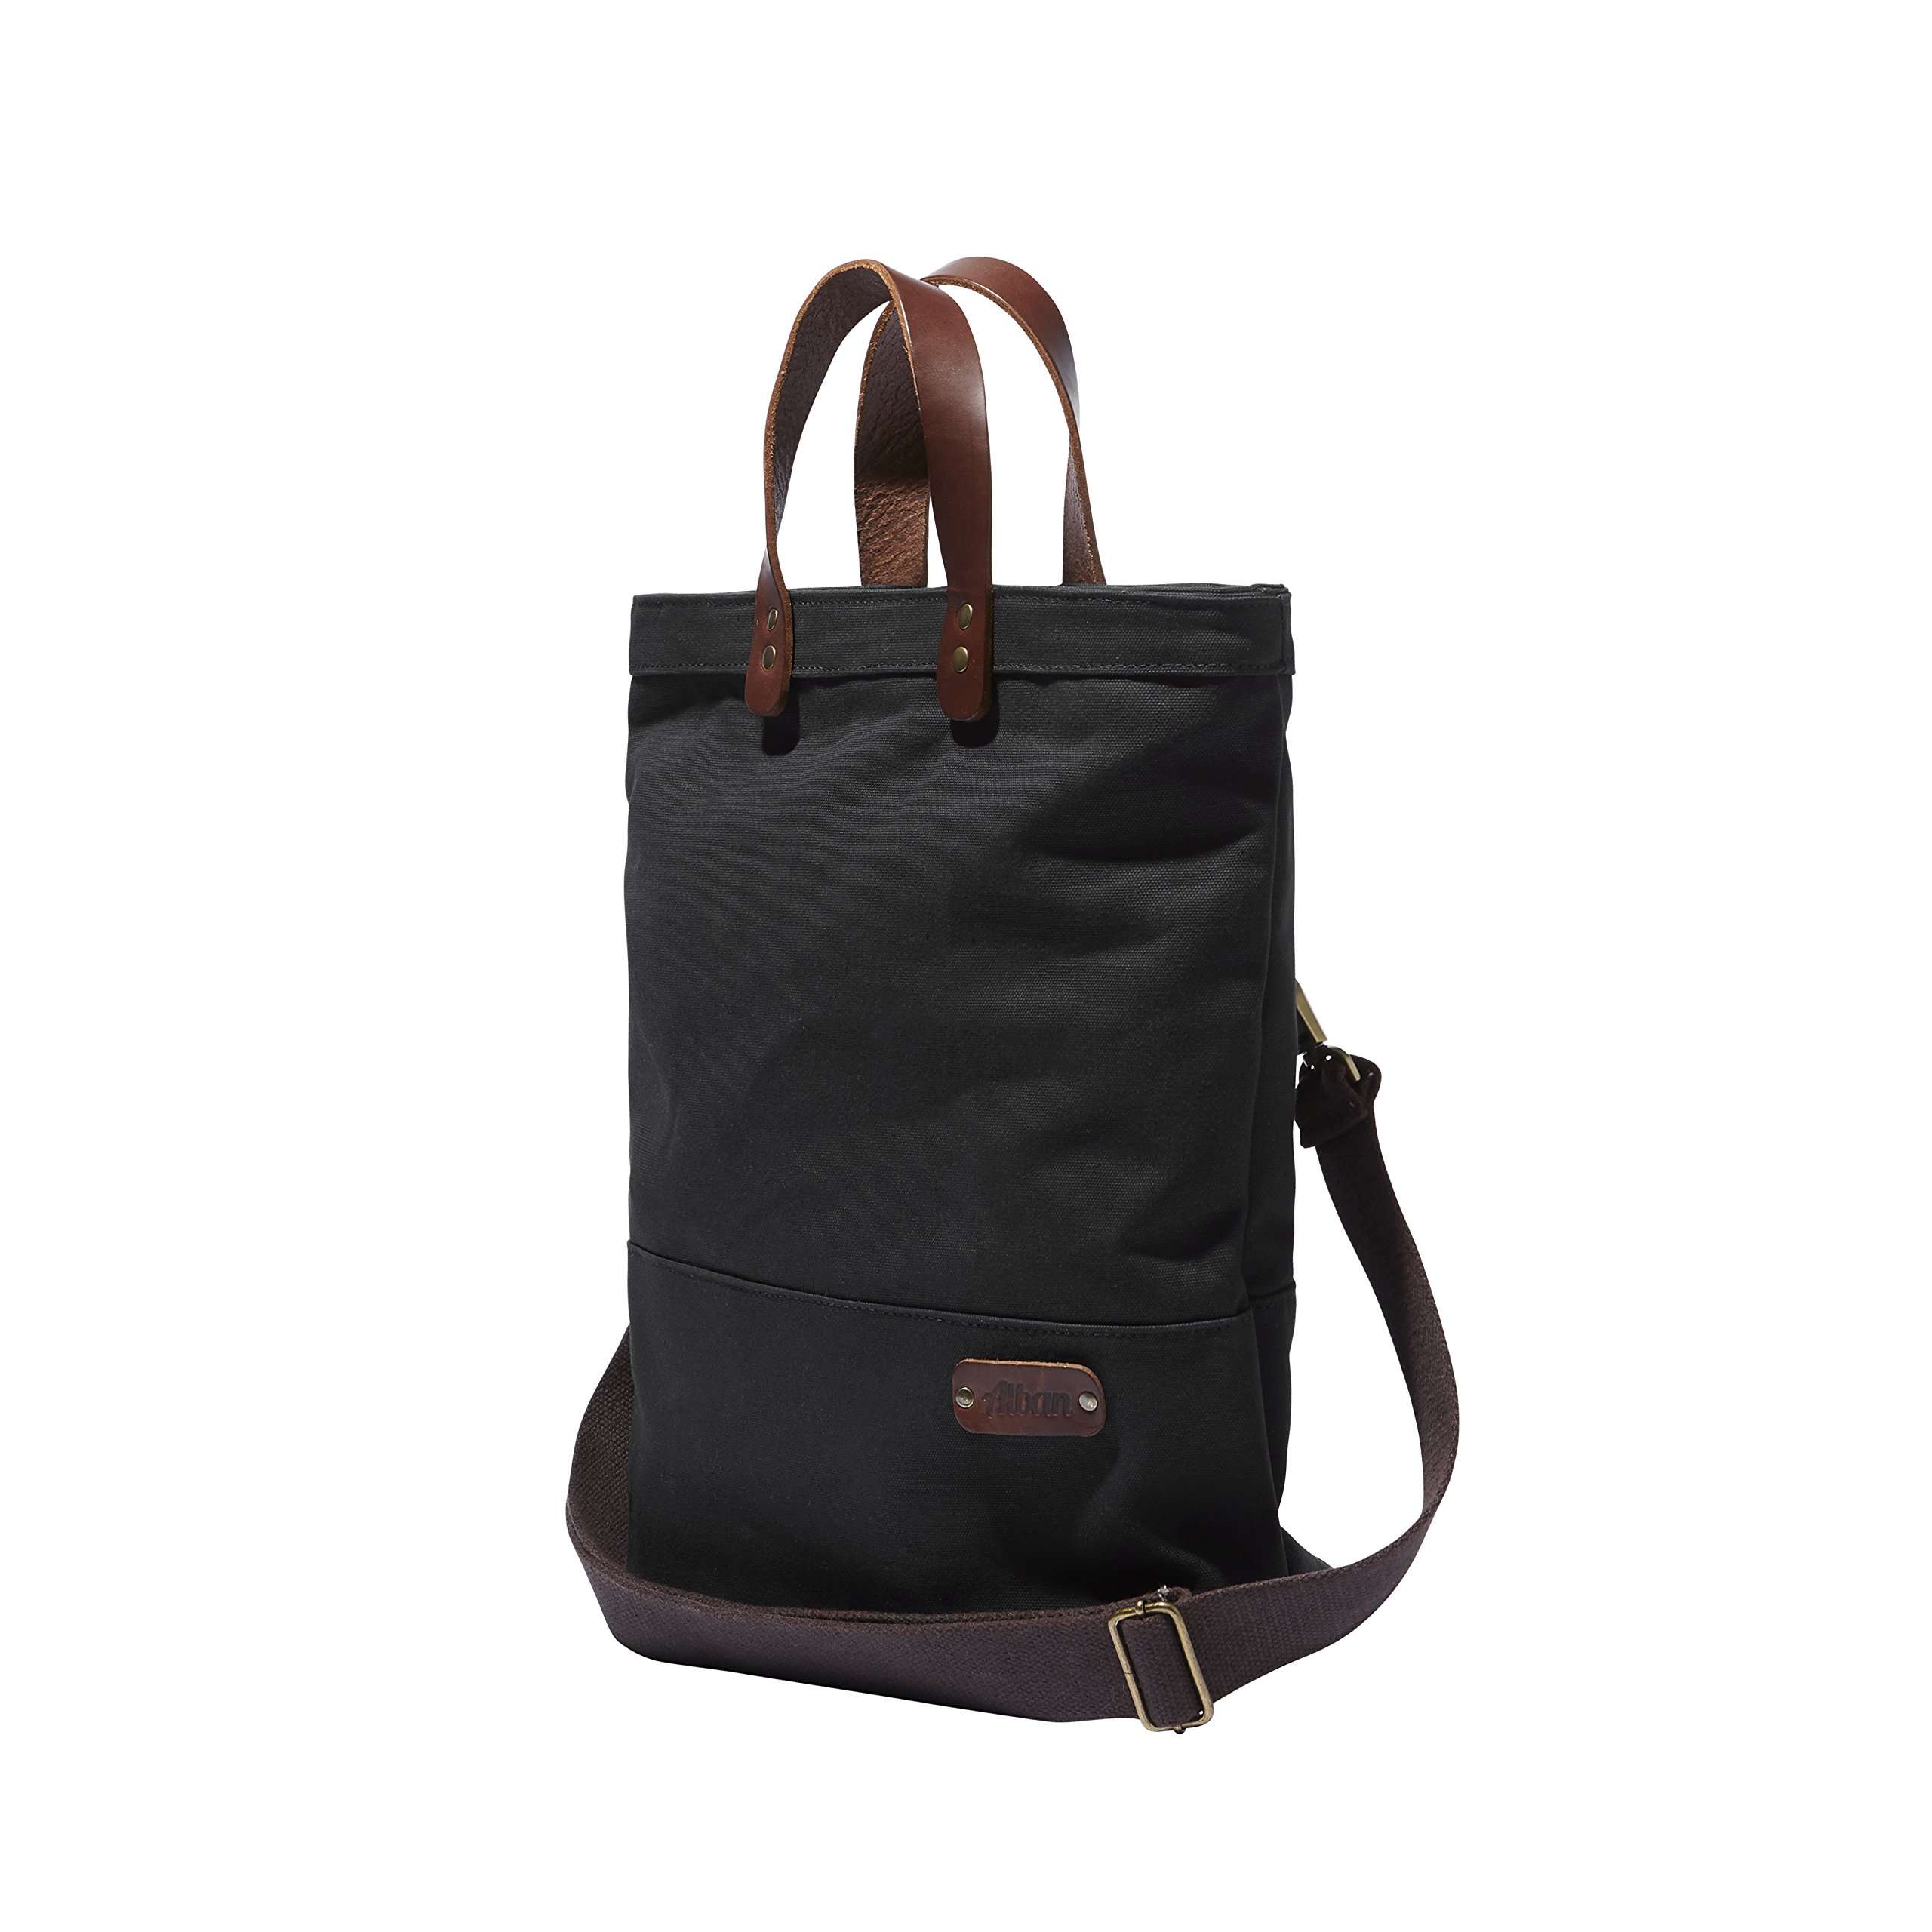 Tote Pannier Bag for Bicycles Alban Bike Bags Black Canvas Tote Pannier Bicycle Bag with Brown Leather Handles